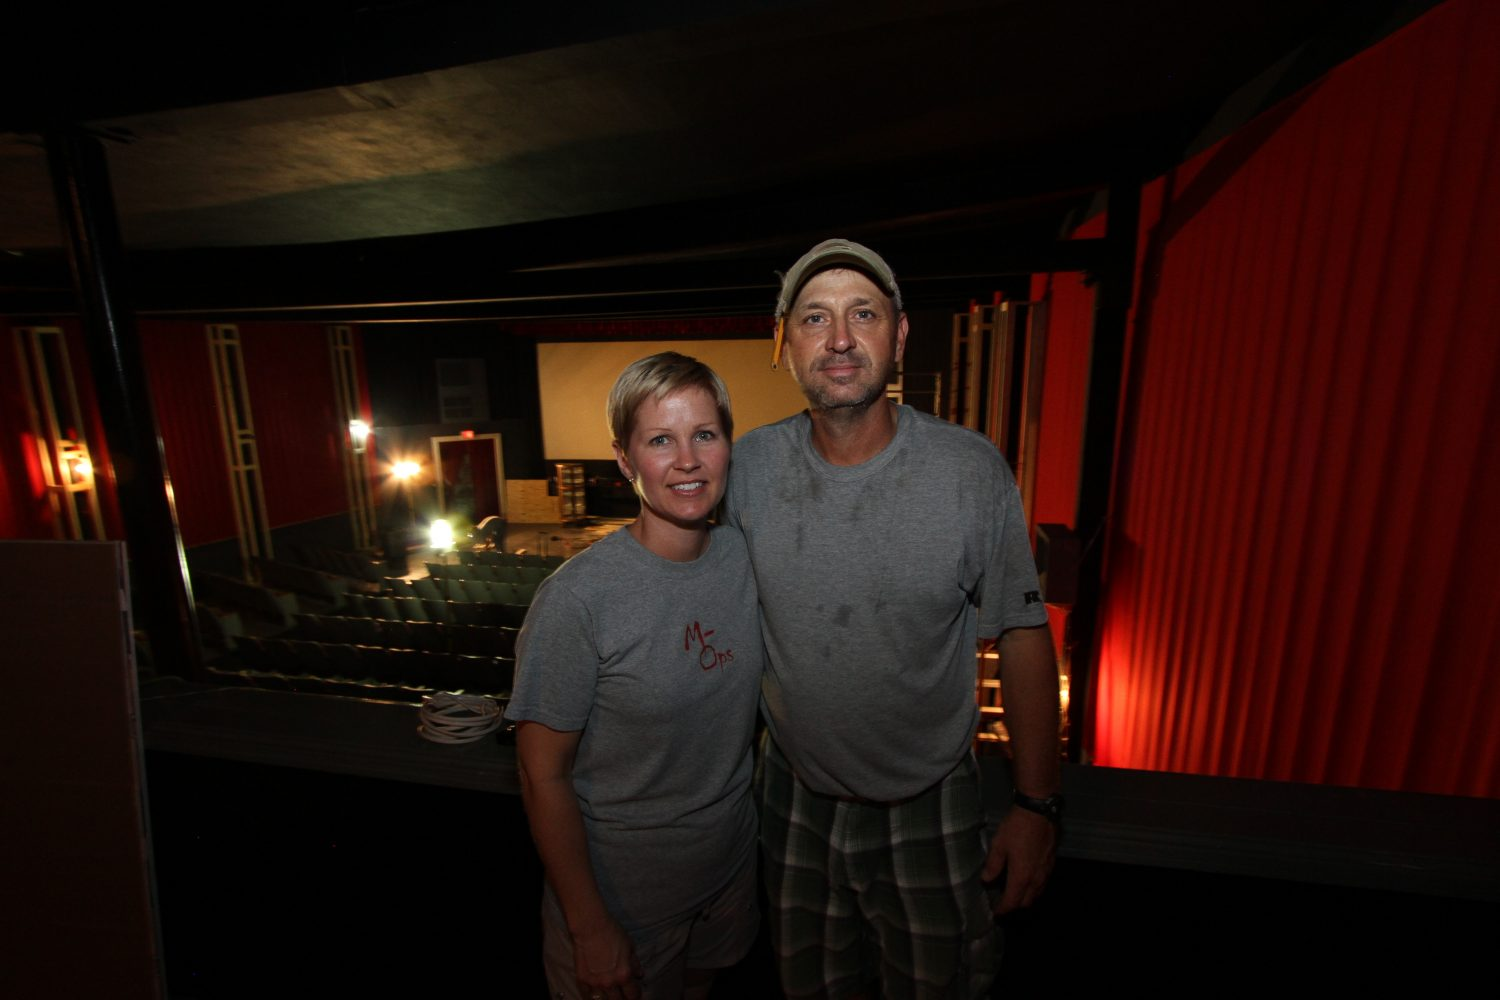 Co-owners Janet and Alan Alligood, after a day of working on the Priest Theatre's renovations.